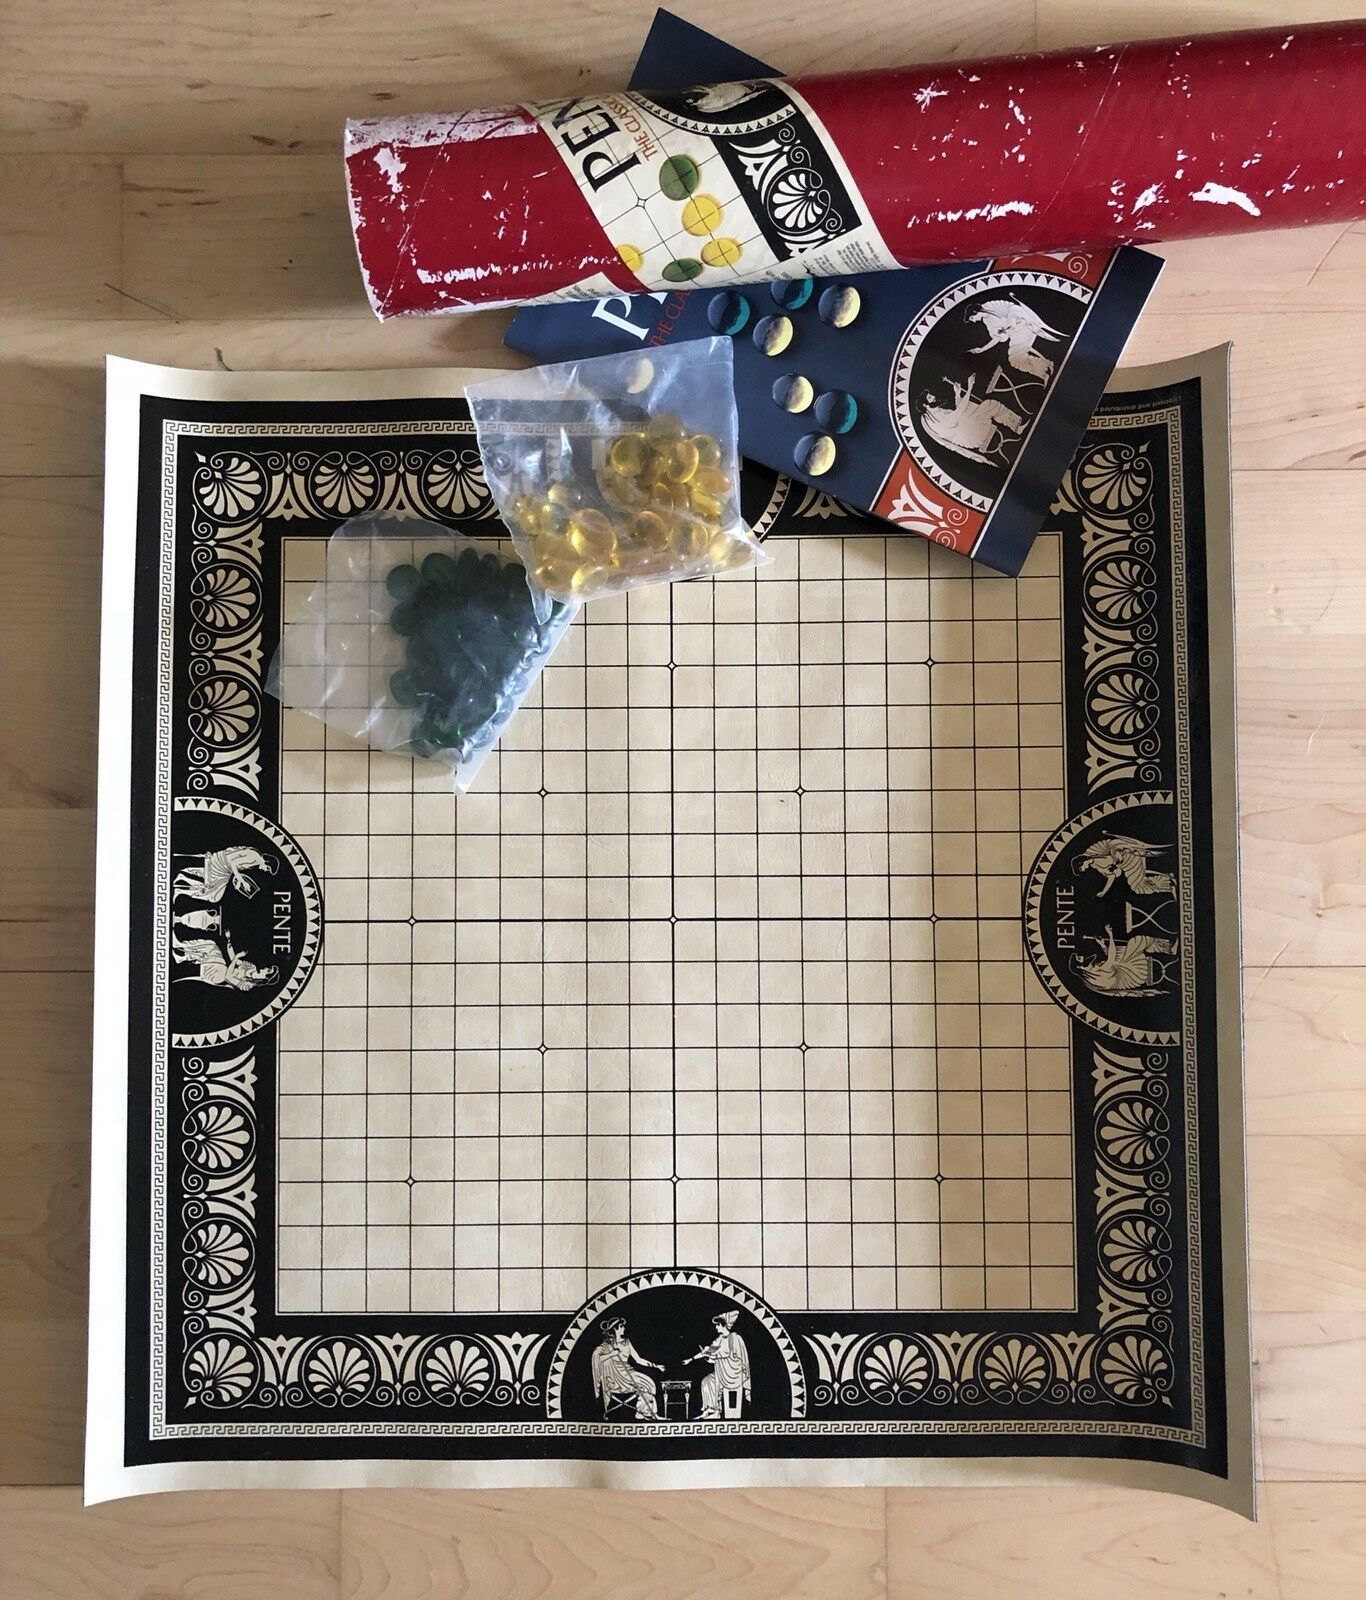 Vintage Pente Board Game ROT Tube Gelb & Grün Glass Stones Game of Skill